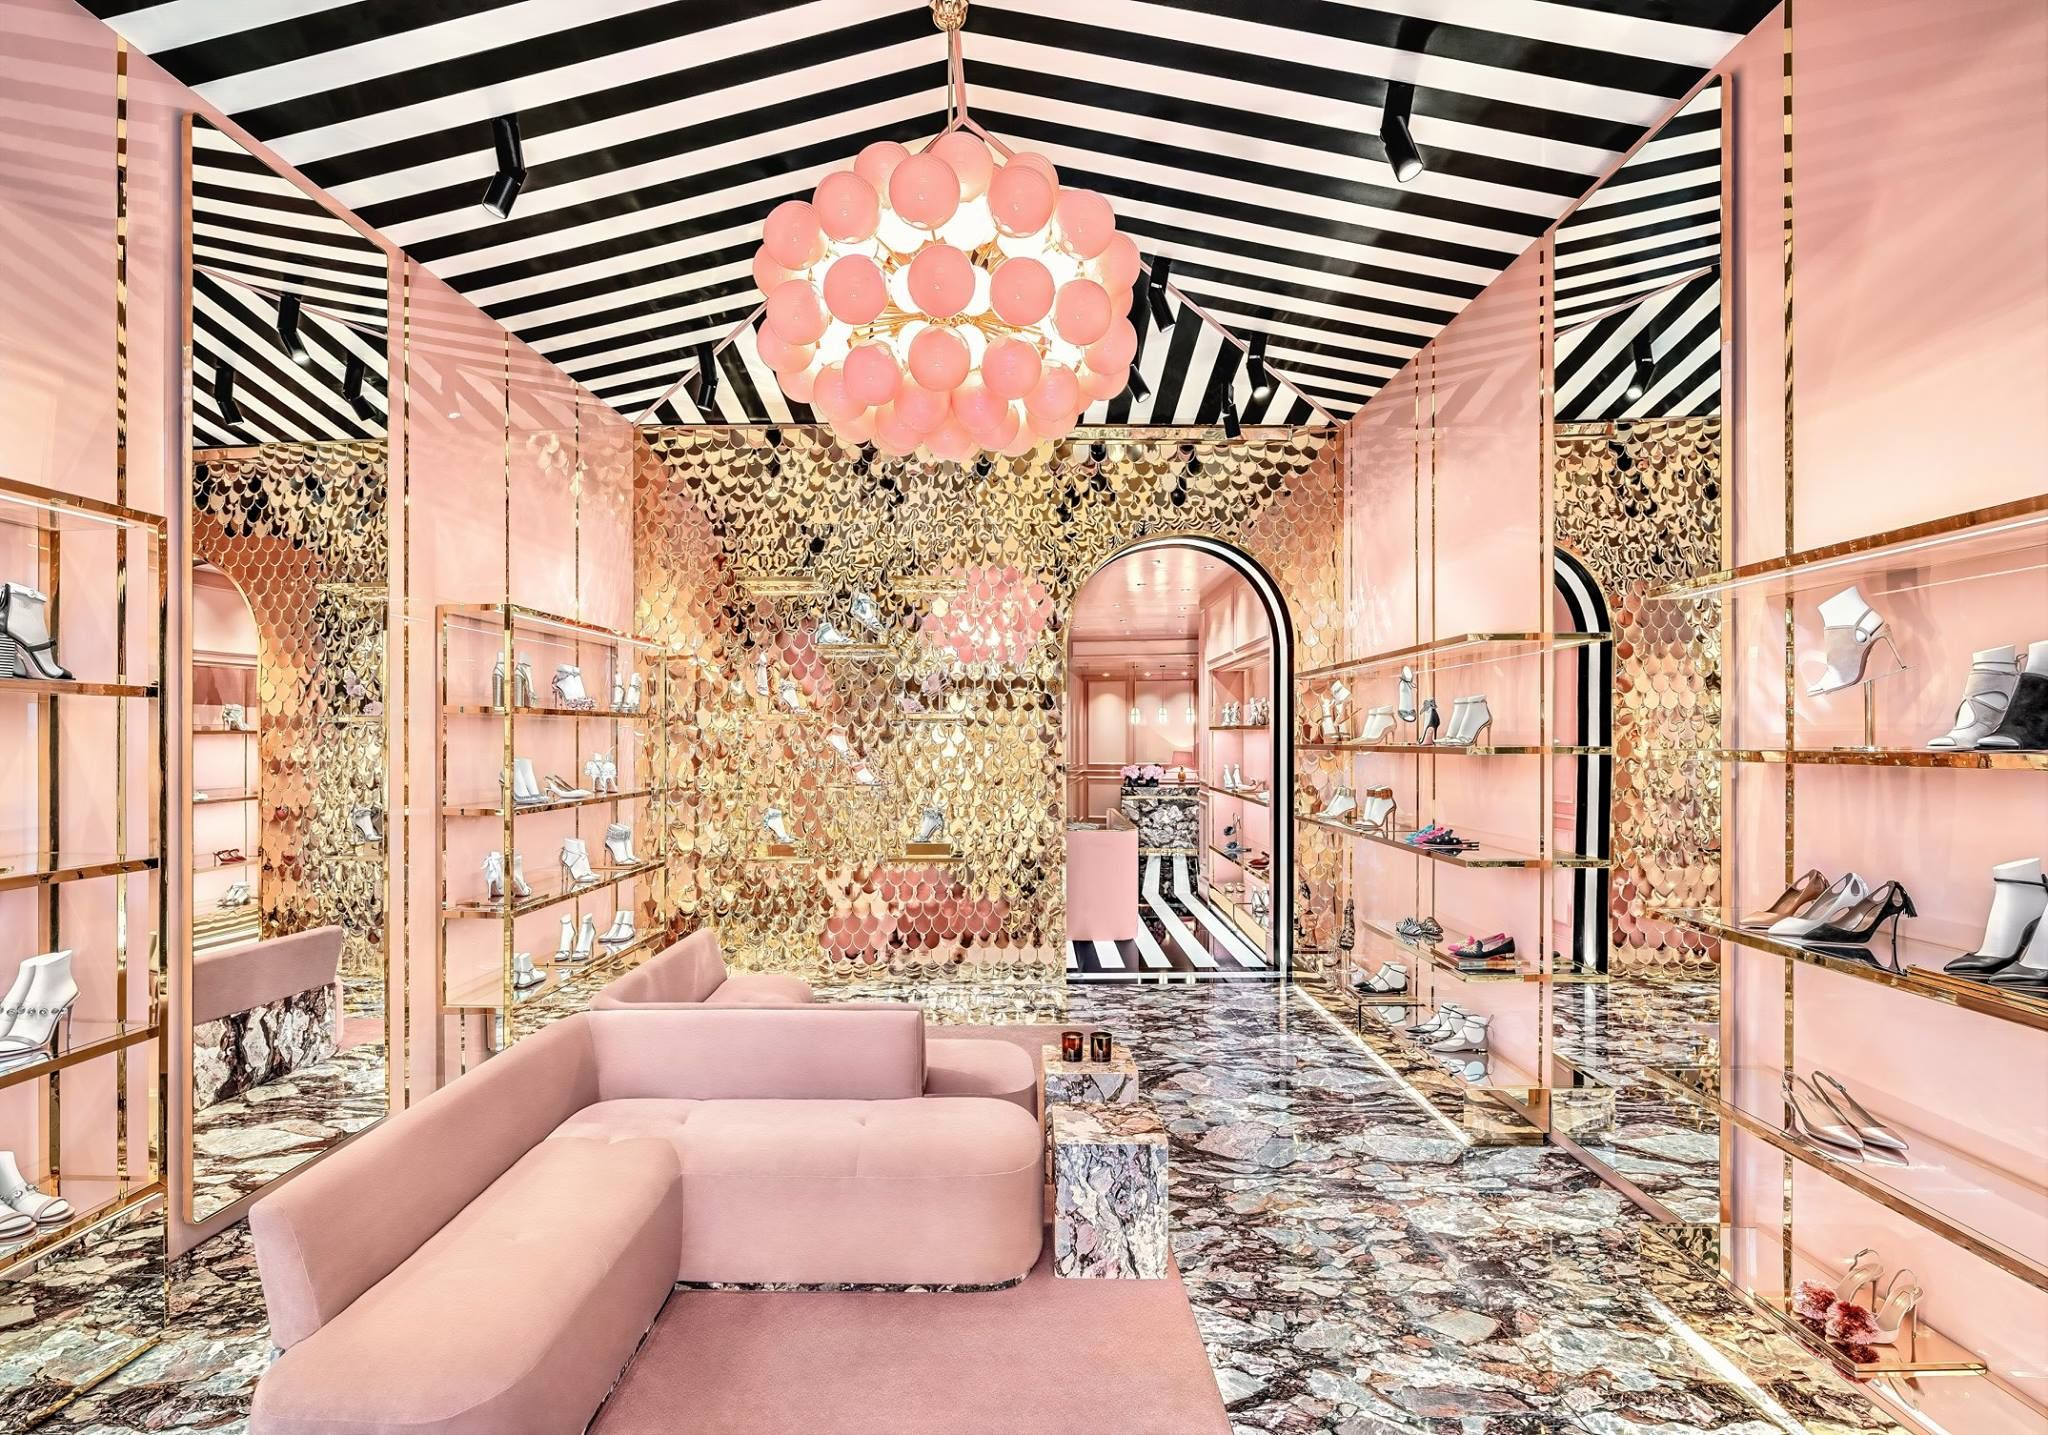 Pin By Kate Thomas On Italy Store Design Interior Retail Space